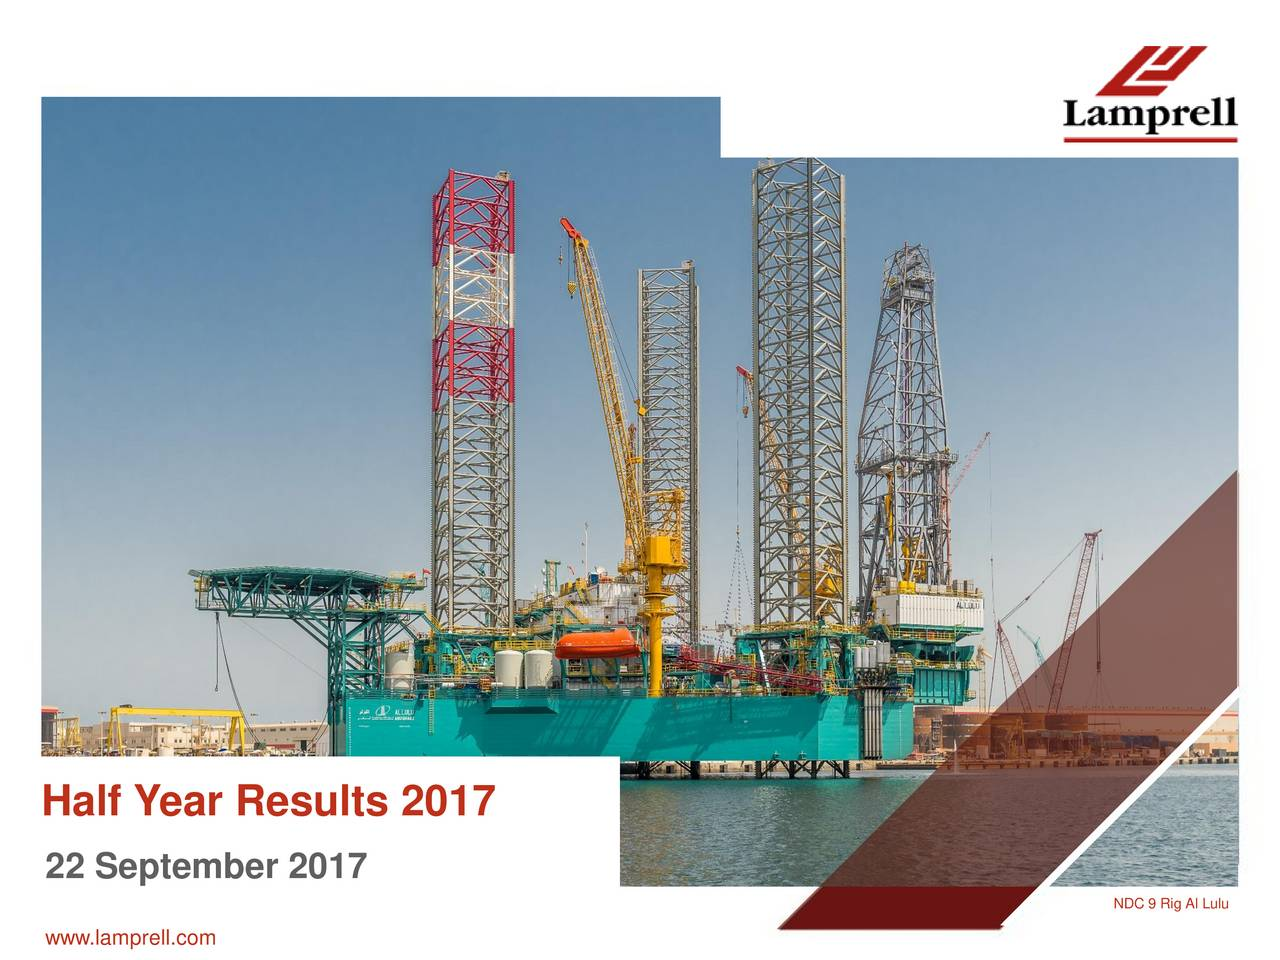 Lamprell PLC ADR 2017 Q2 - Results - Earnings Call Slides